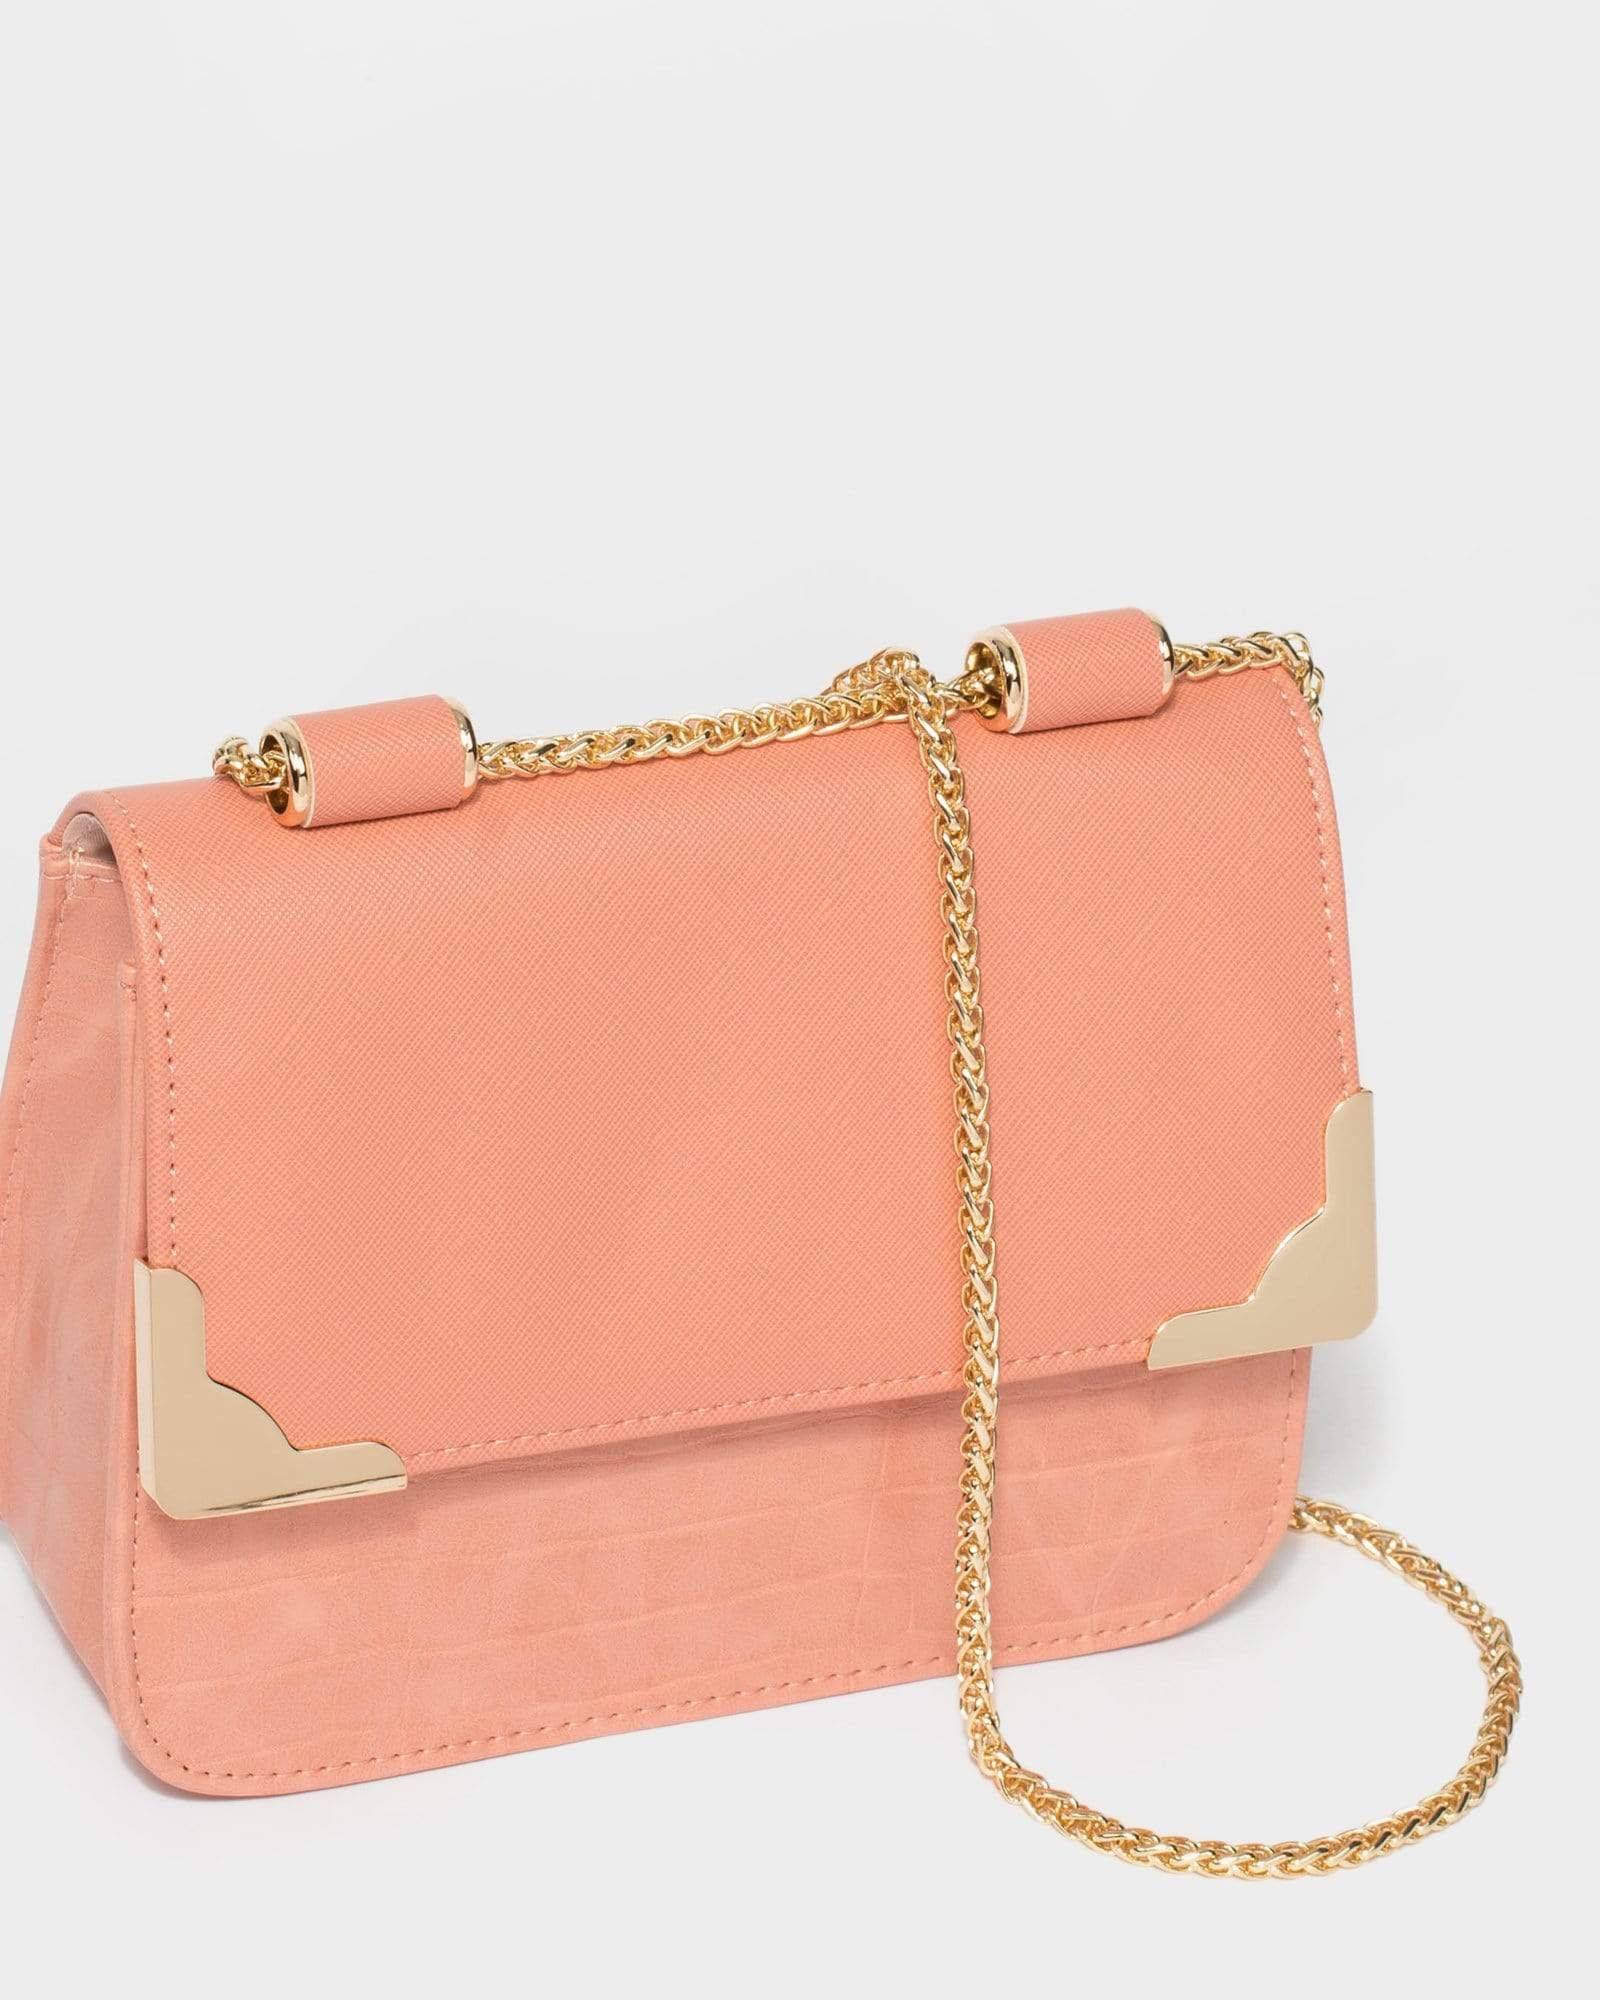 Pink Tiana Small Bag In 2020 Bags Small Bag Purses And Bags